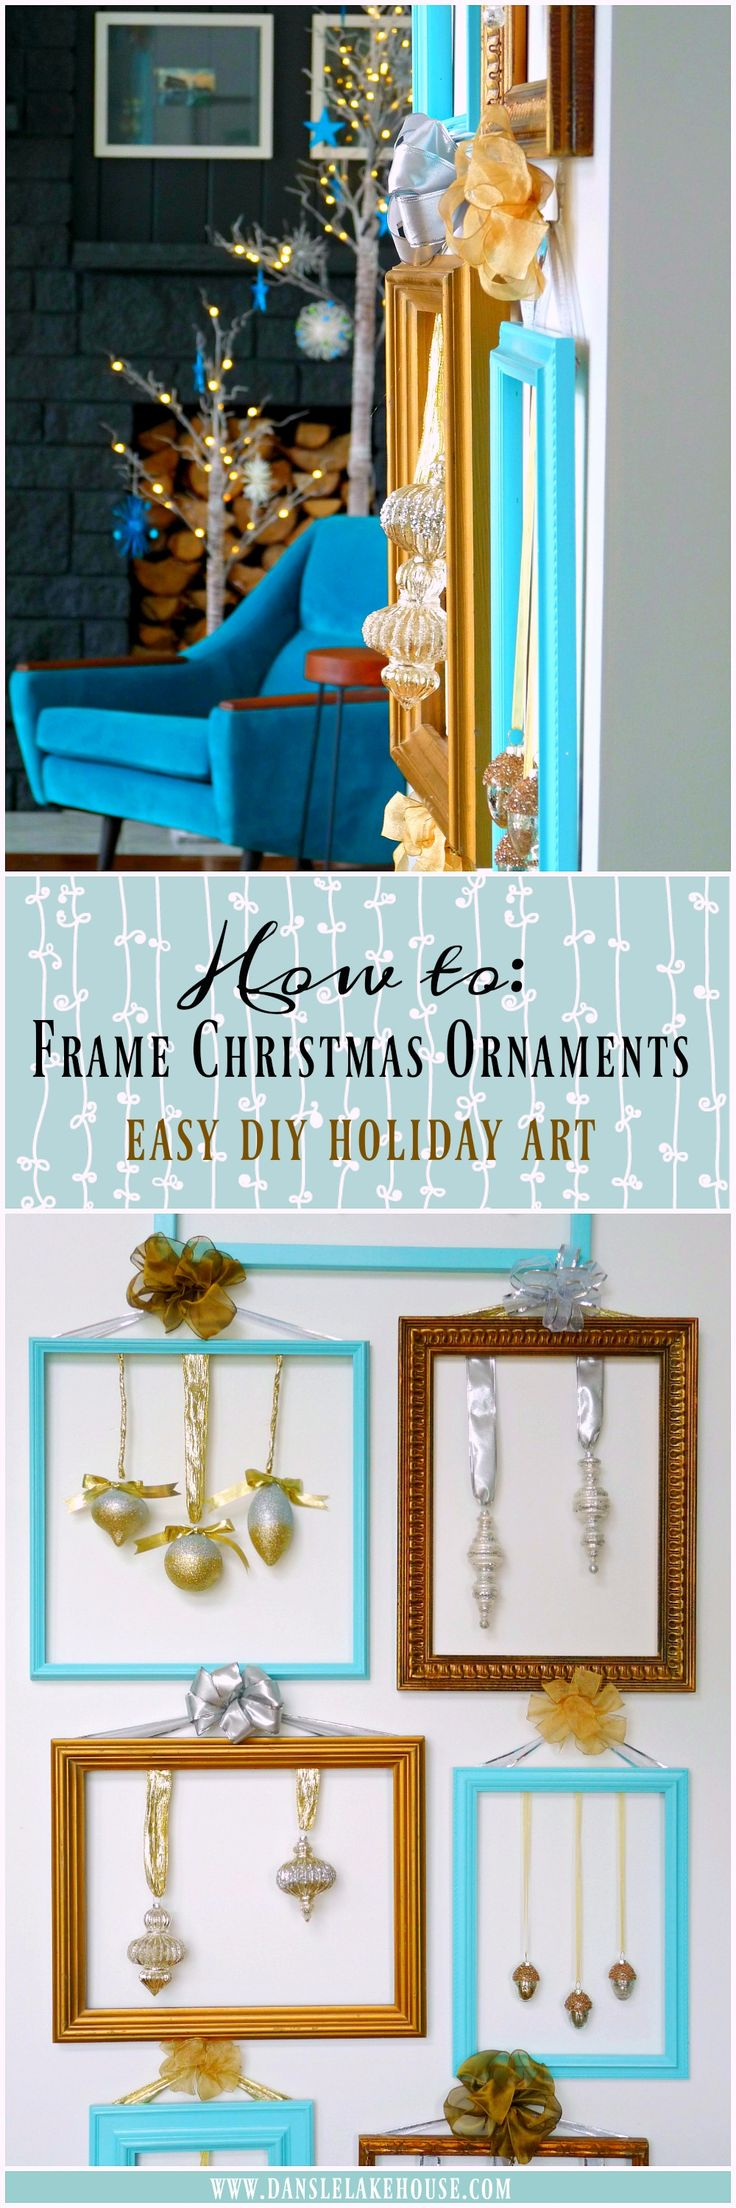 "How to Make ""Framed"" Christmas Ornaments - Such a Cute Idea for Easy Holiday Art // Click Through for Other Unique Ideas for Displaying Ornaments - Alternatives to the Traditional Christmas Tree // Teal Holiday Decor Scheme"